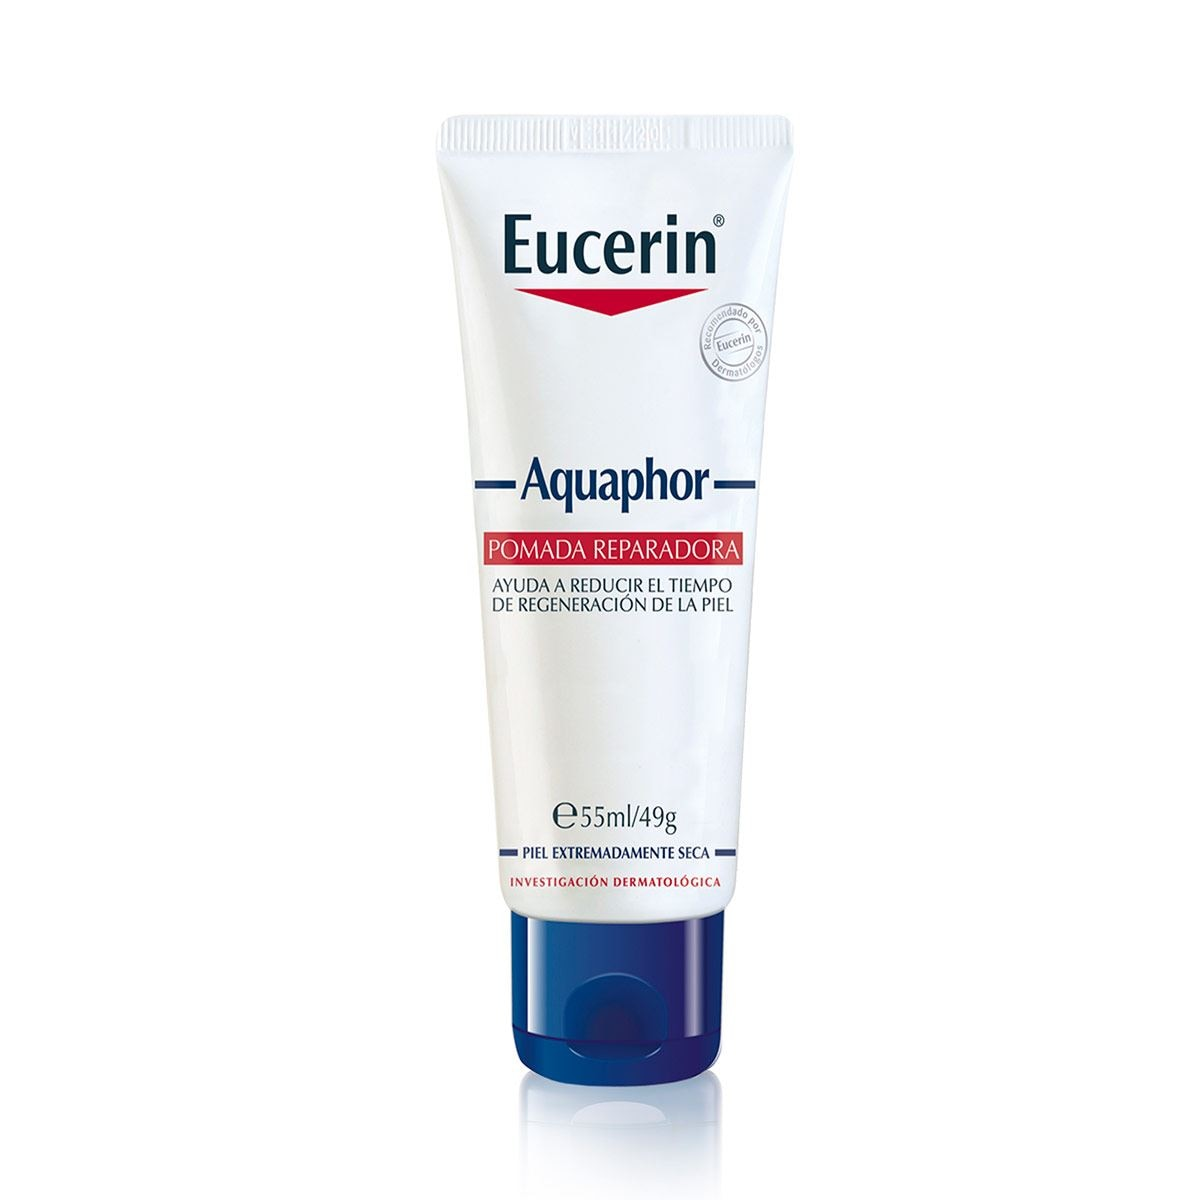 Eucerin Aquaphor Tubo, 50ml